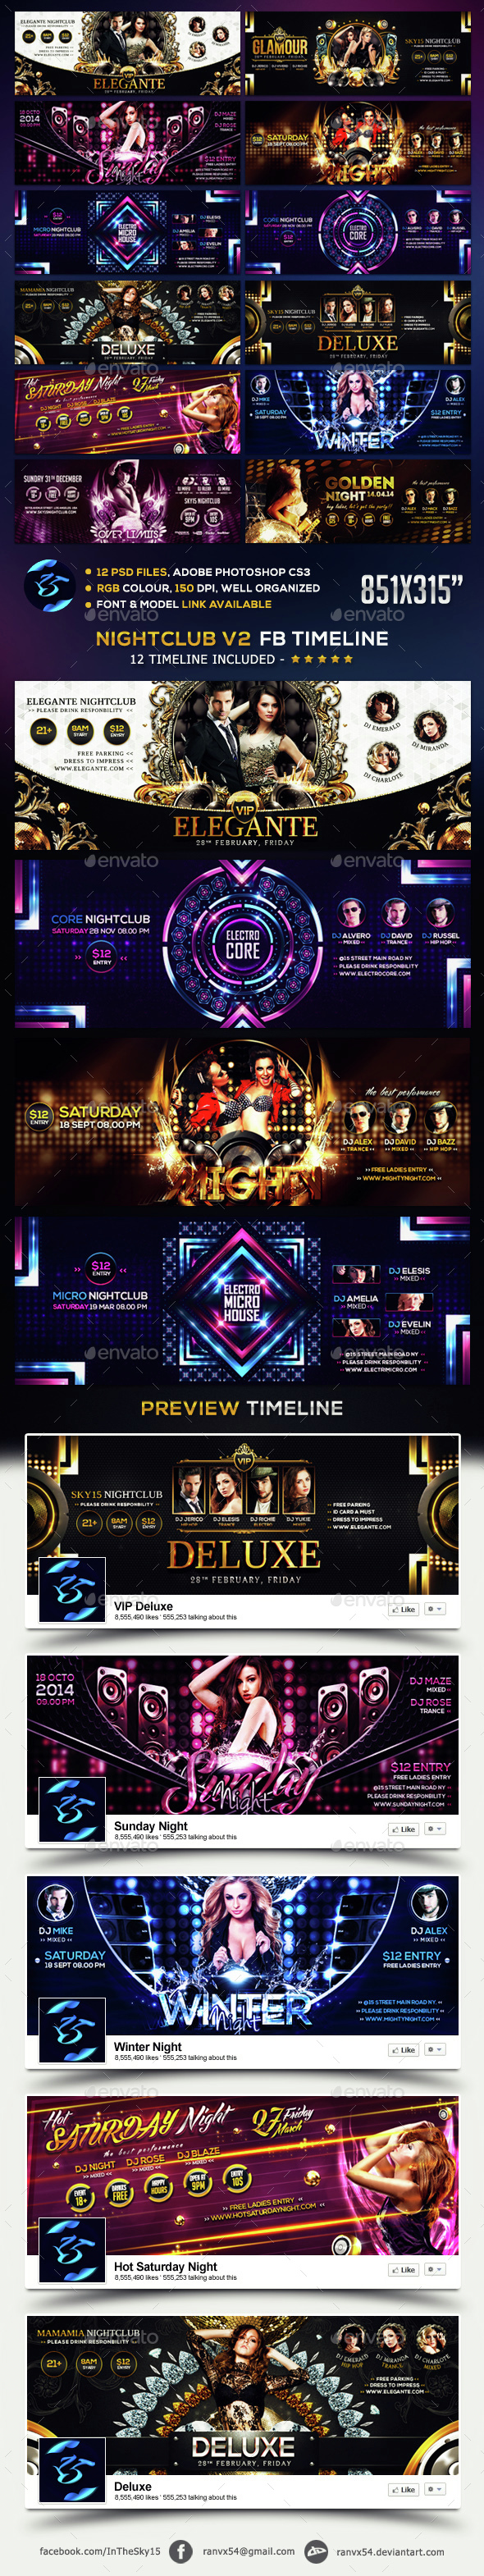 Nightclub V2 FB Timeline Cover - Social Media Web Elements